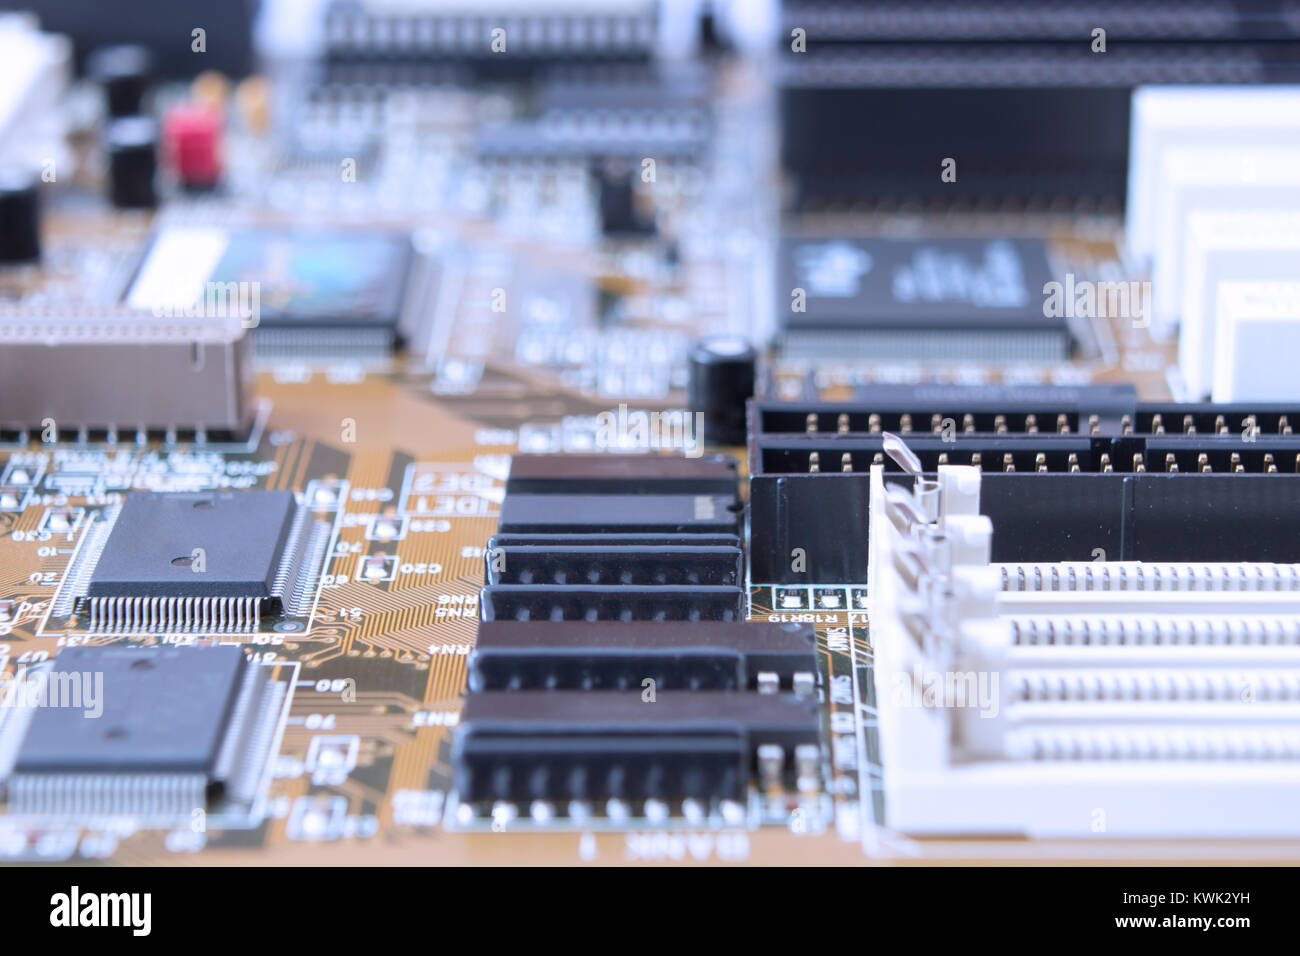 Resistors On Circuit Board Stock Photos Integrated Looks Like A Bug Are Capacitors Slots Circuits Microprocessor Image